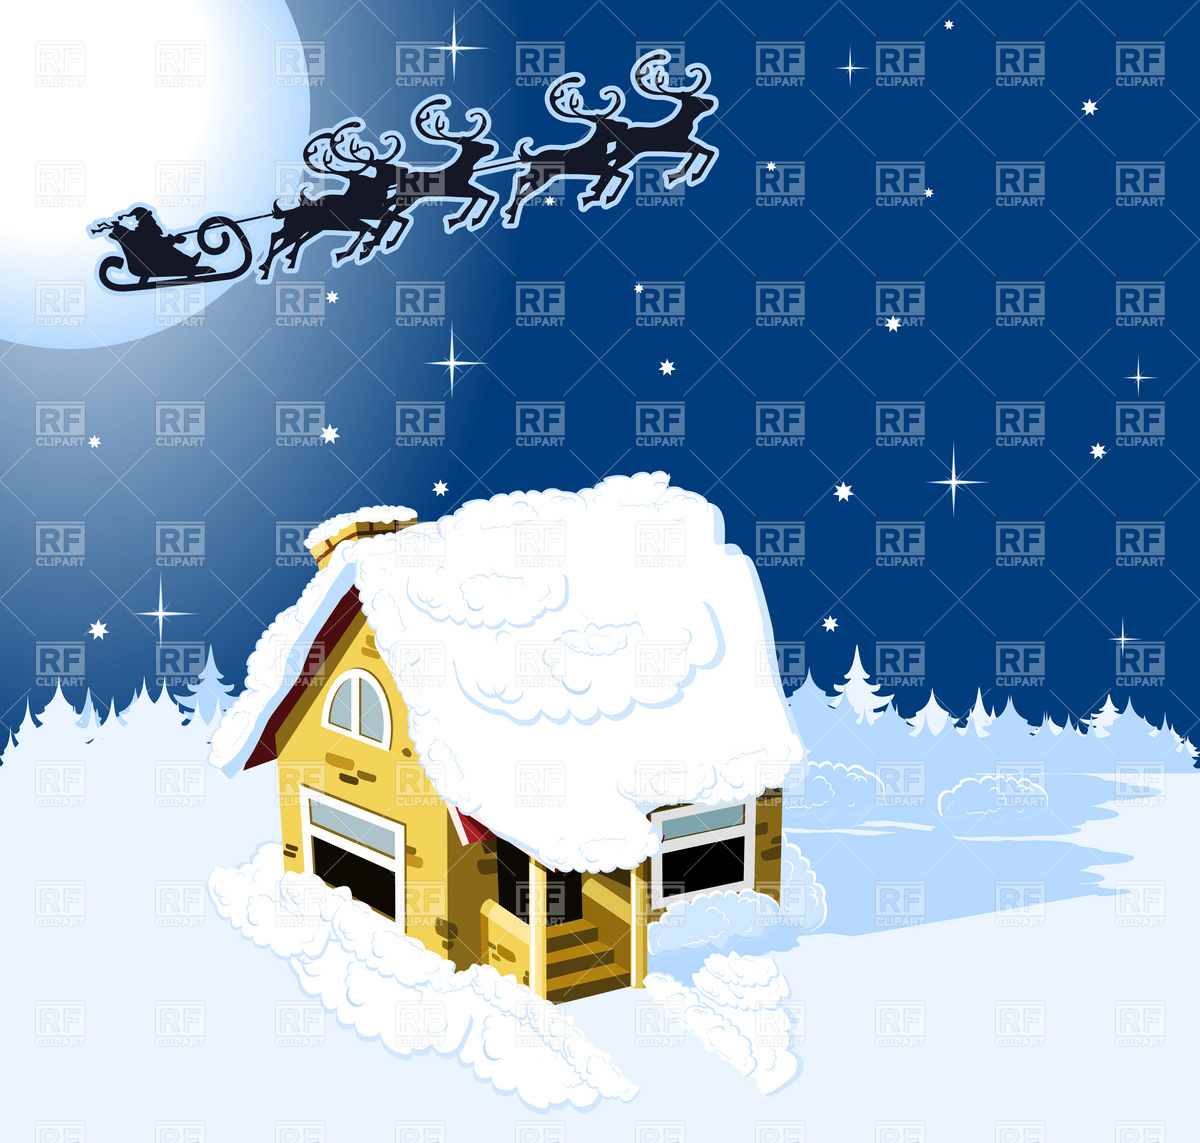 House in snow on the Christmas background Vector Image #4627.